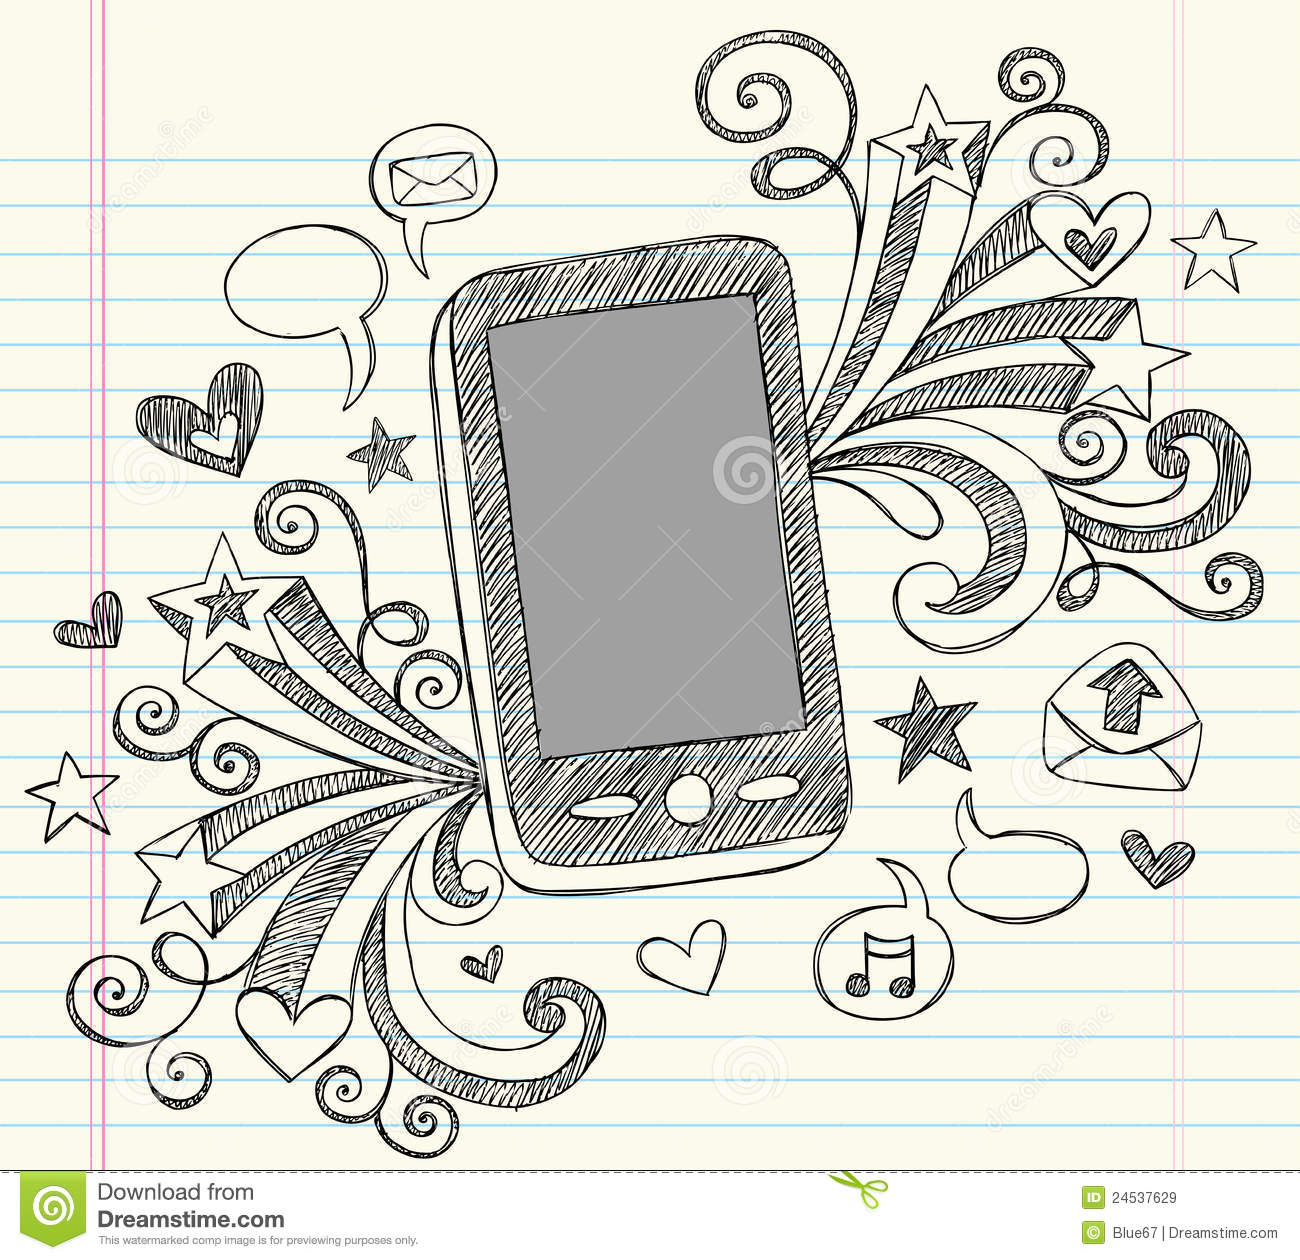 Cell Phone Sketchy Doodles PDA Vector Stock Illustration